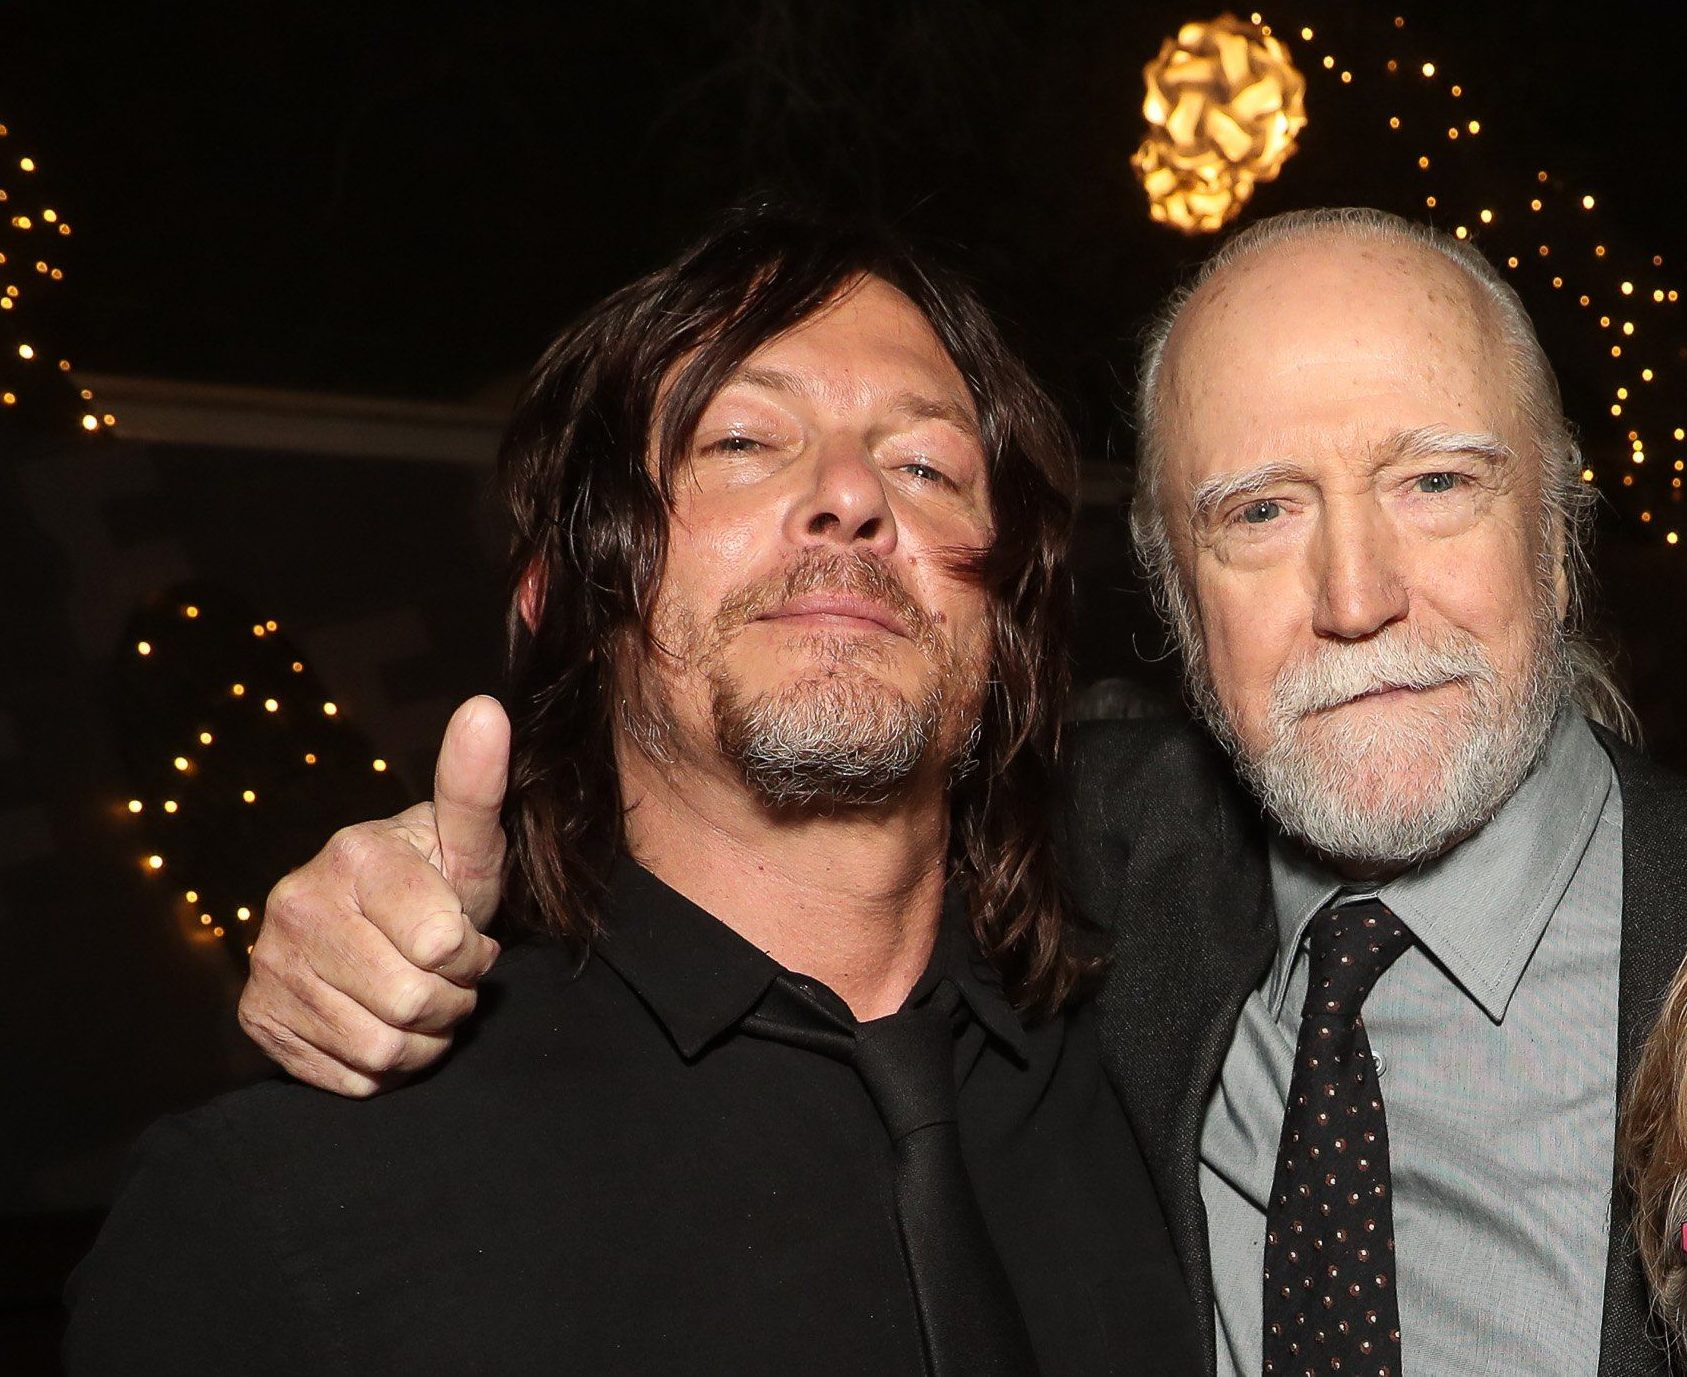 The Walking Dead's Norman Reedus pays emotional tribute to late co-star Scott Wilson